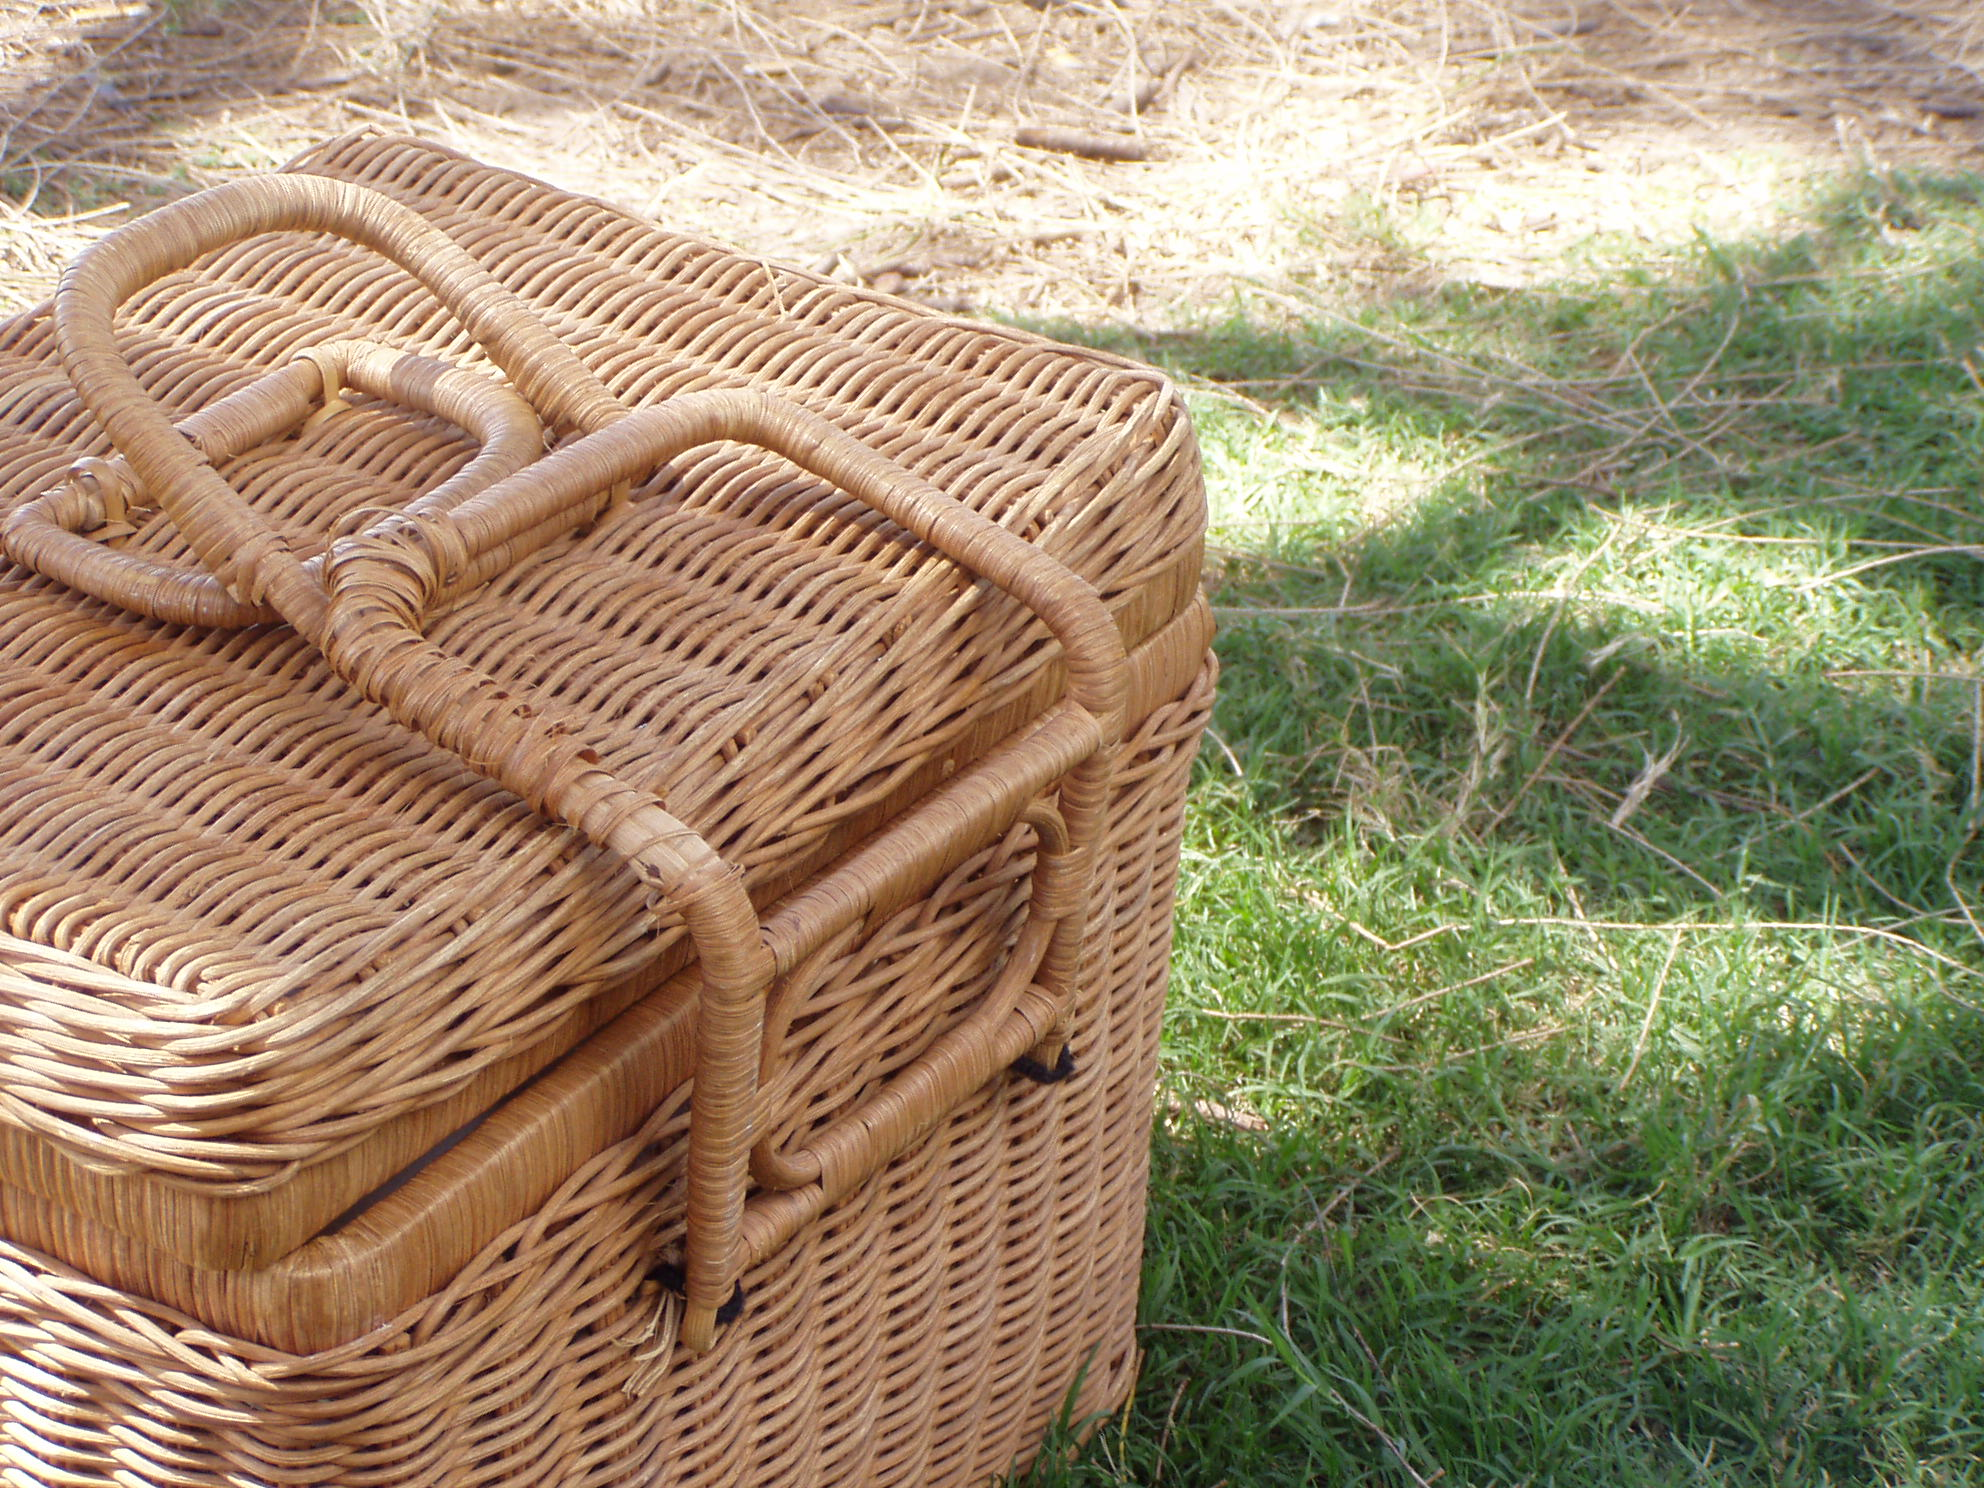 Picnic Baskets For 4 Ireland : Pick of picnic spots in ireland irish fireside travel